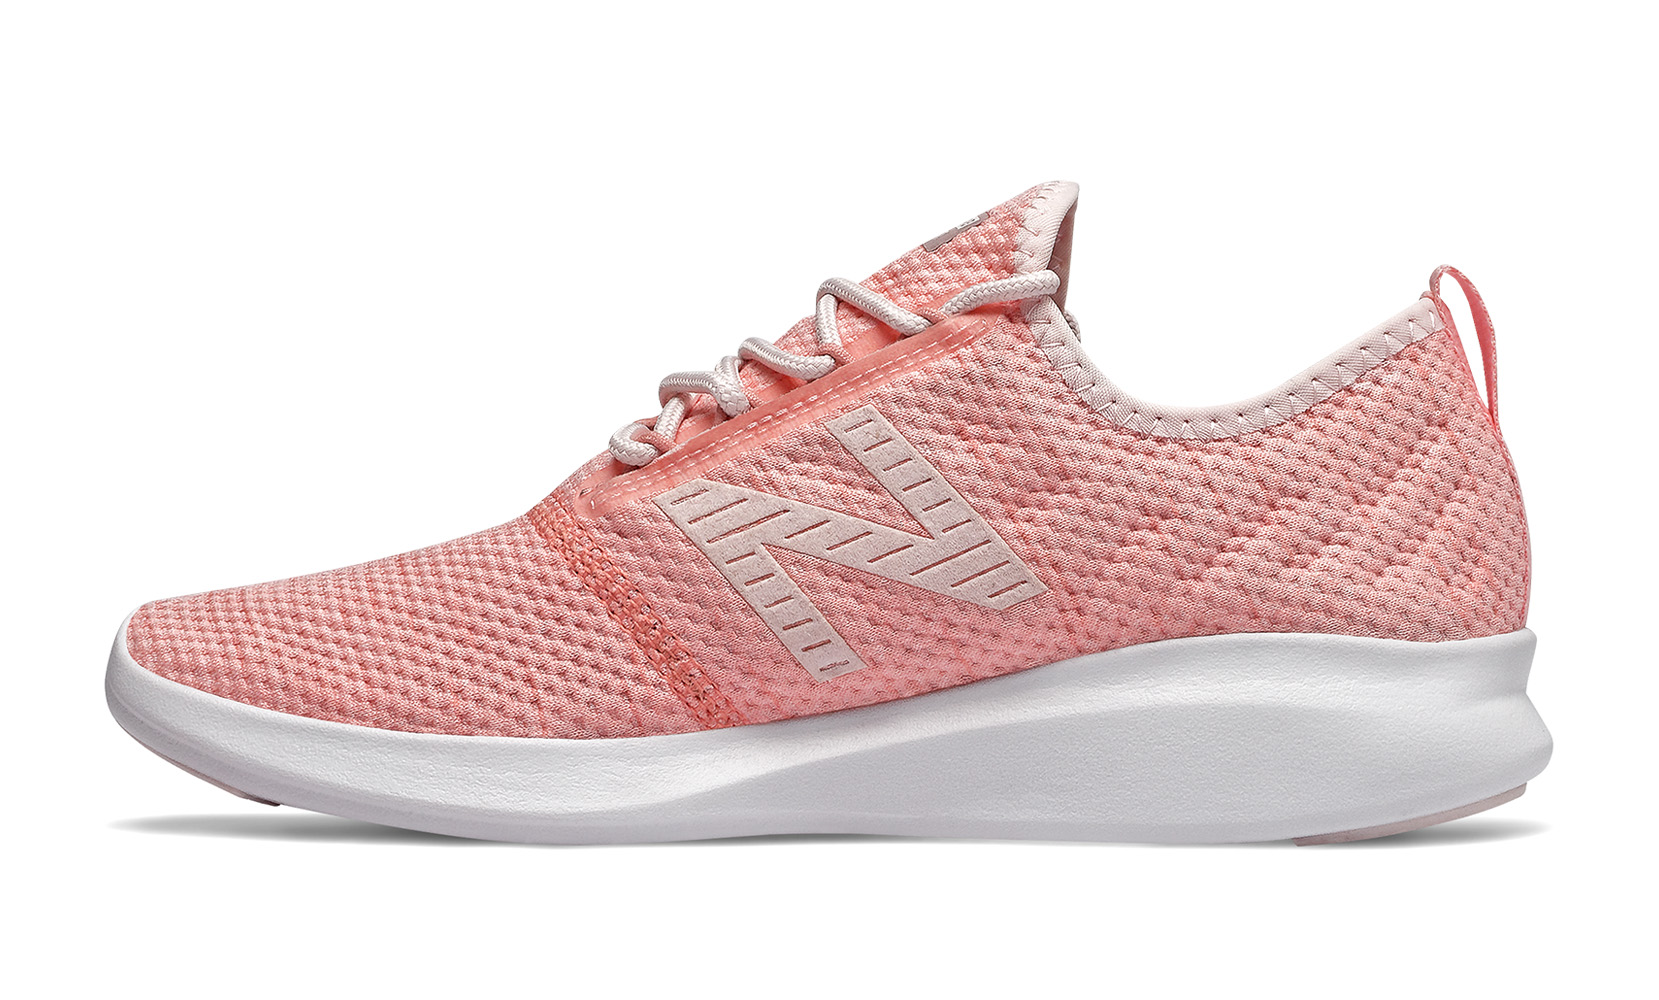 Жіноче взуття для бігу New Balance FuelCore Coast v4 WCSTLRC4 | New Balance